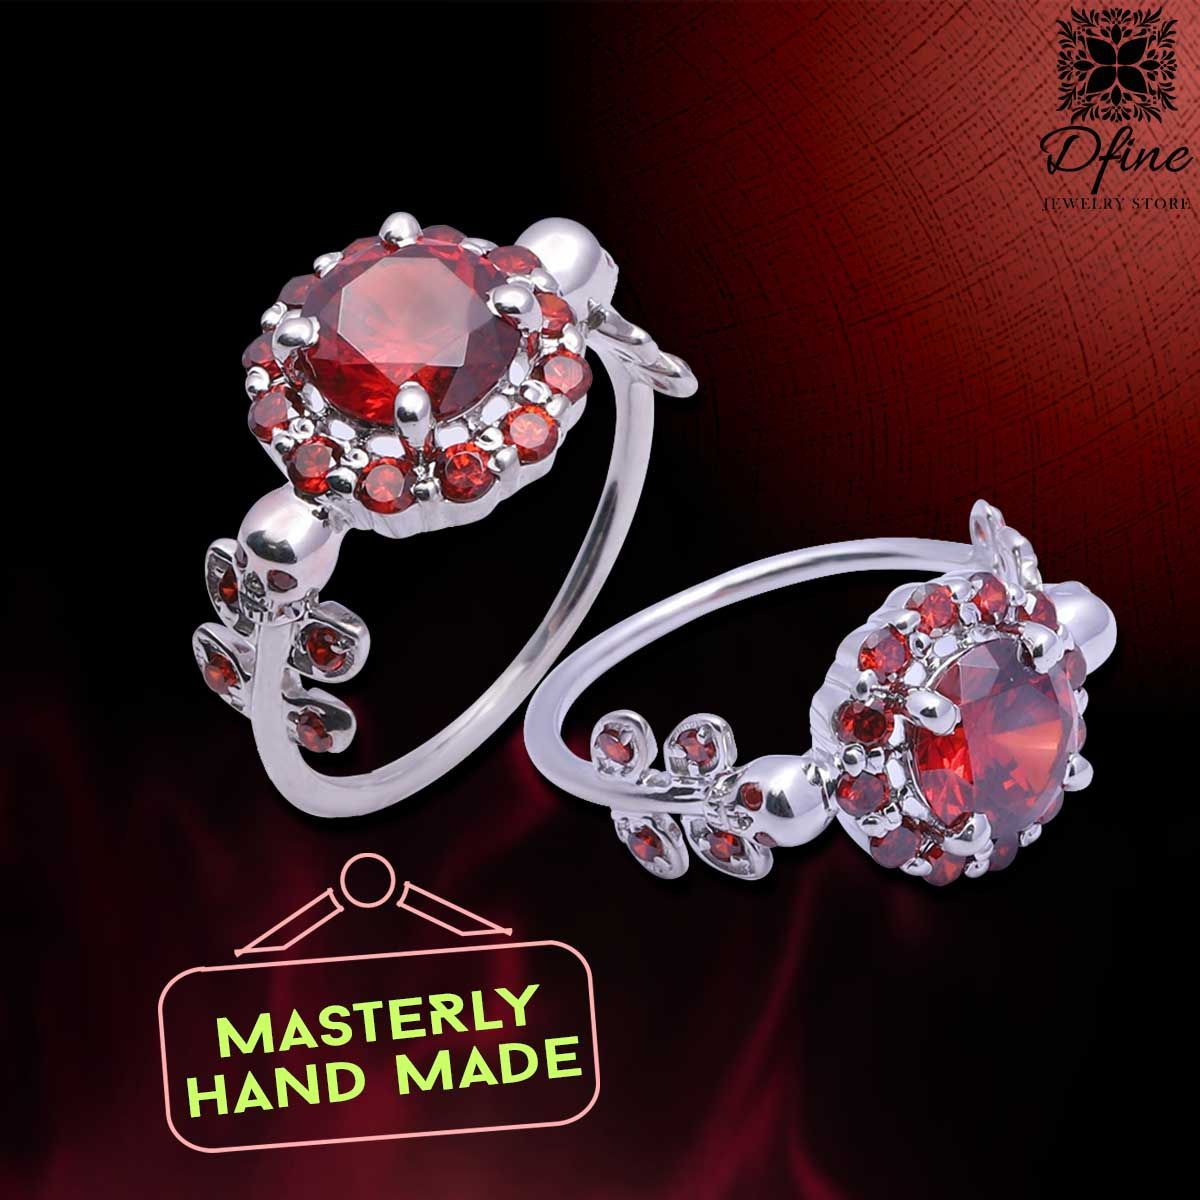 """""""Master Hand made jewelry for everlasting"""" Featuring Silver Petal Skull Ring 1.70cttw Red CZ Gothic Skull Engagement Ring. #jewelry #fashion #art #jewellery #beauty #style #wedding #beautiful #engagement #love #gothic #rings #luxury #handmadejewelry #handmade #handcrafted #handmadewithlove #skulls #designerjewelry #designart #dfinejewelrystore"""